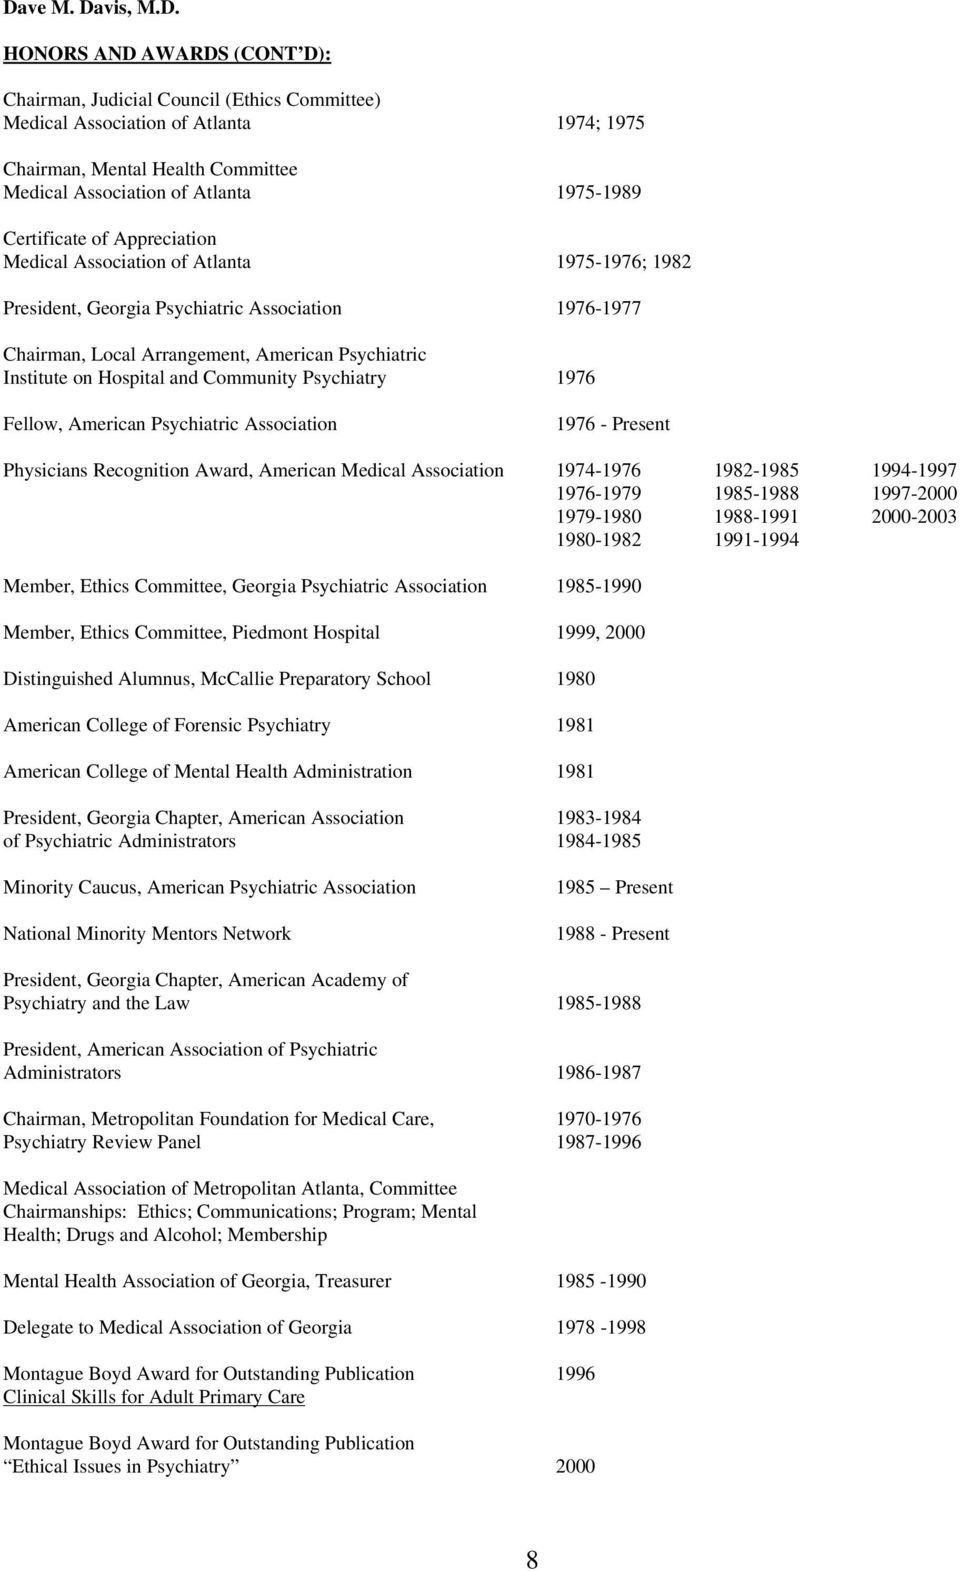 and Community Psychiatry 1976 Fellow, American Psychiatric Association 1976 - Present Physicians Recognition Award, American Medical Association 1974-1976 1982-1985 1994-1997 1976-1979 1985-1988